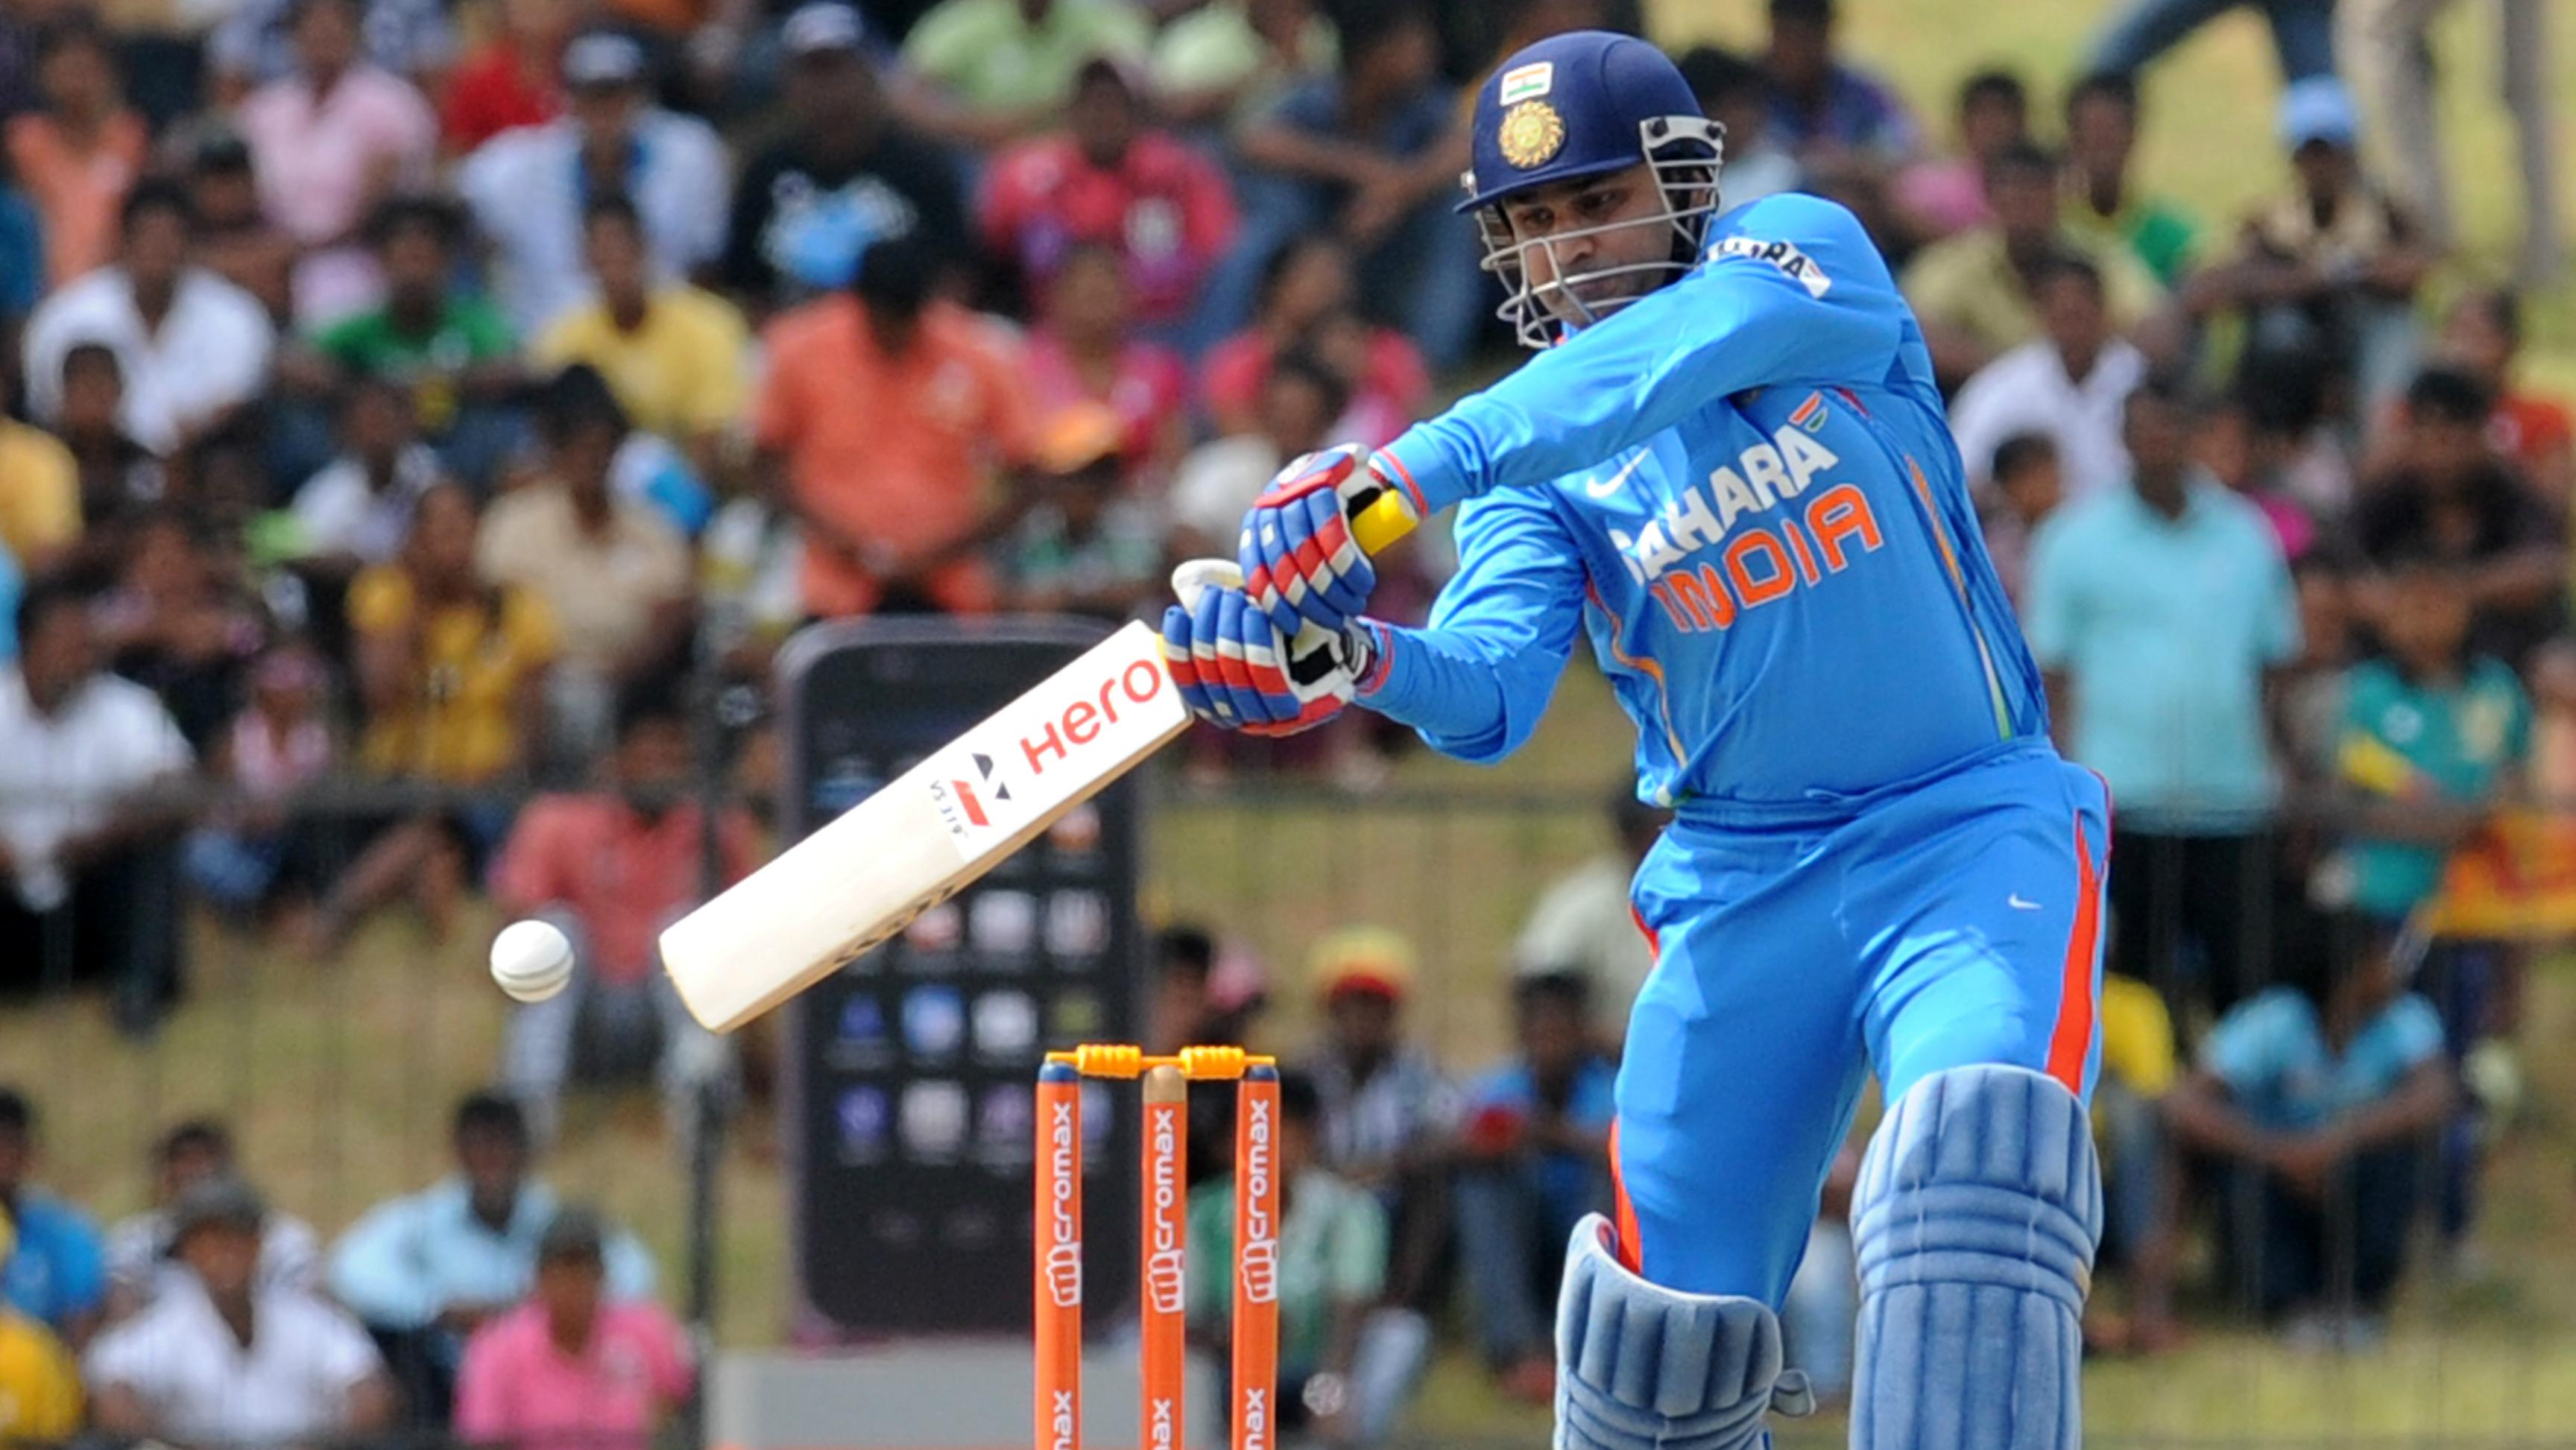 Sehwag picks India as favourites to win World Cup 2019